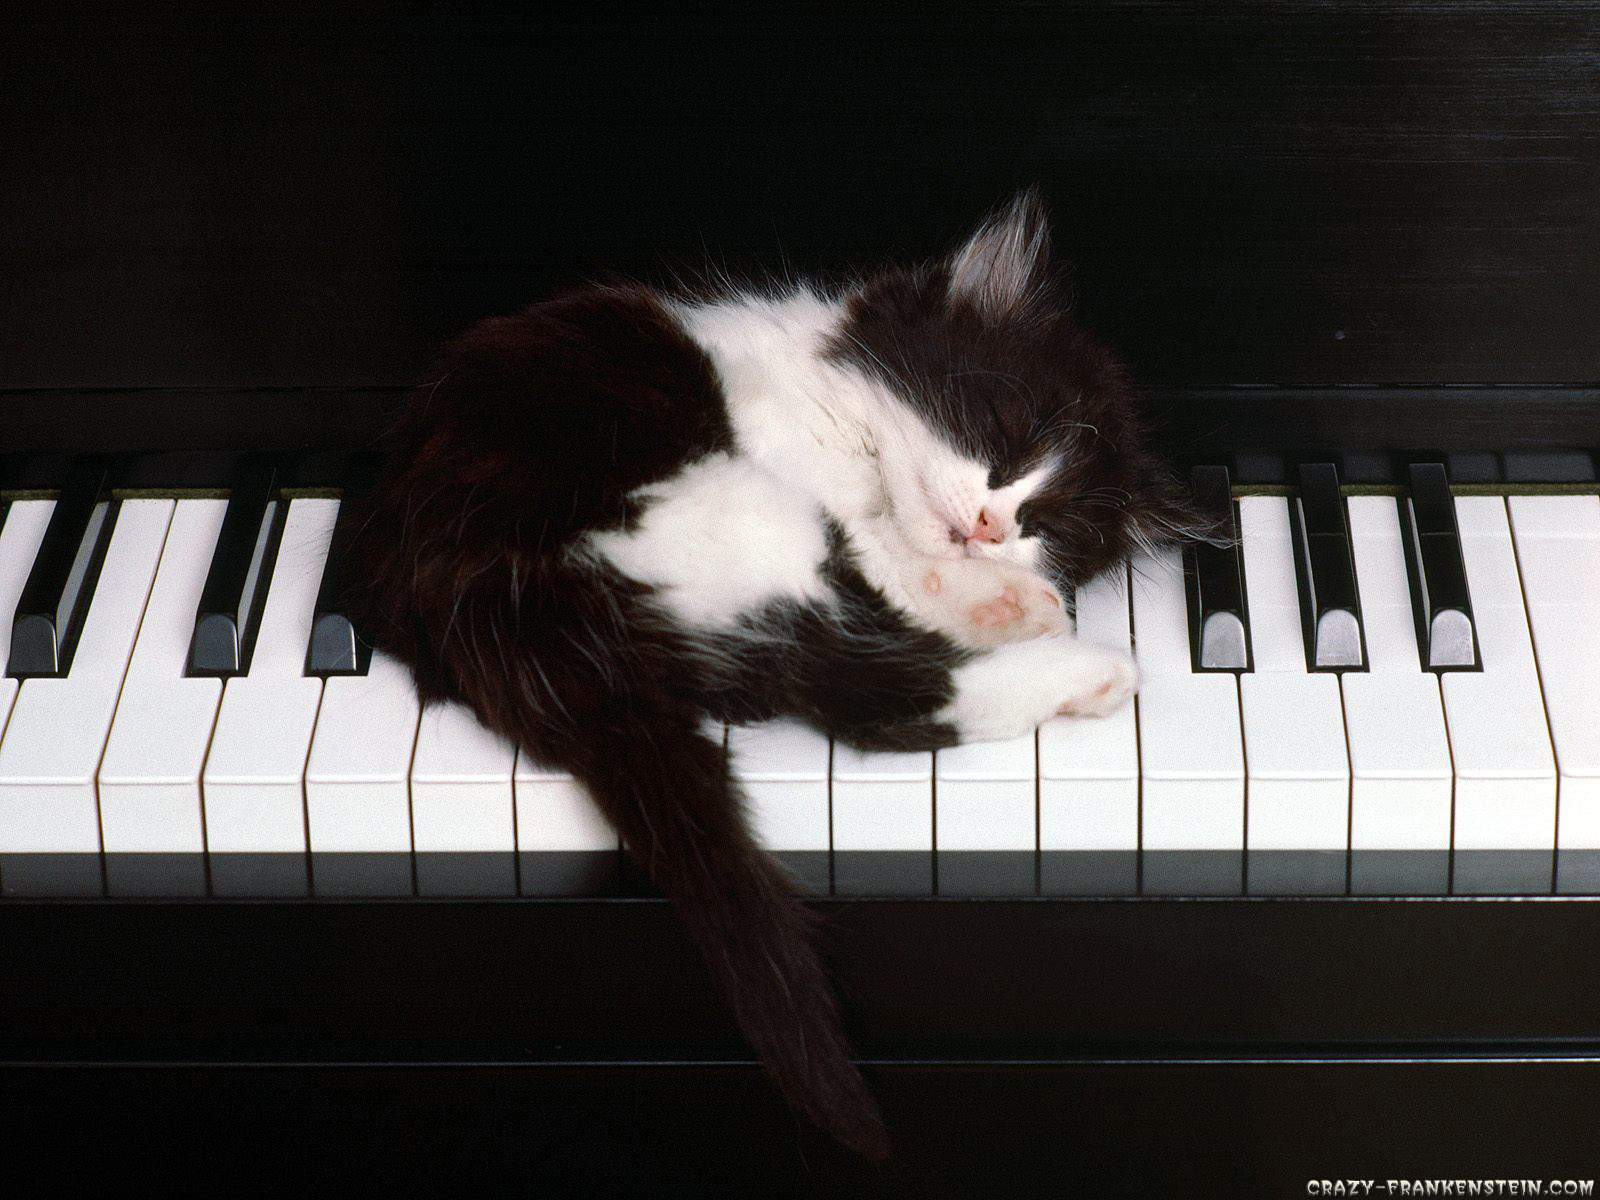 http://2.bp.blogspot.com/-aQPymjwGNHs/UGgdNA-JsWI/AAAAAAAAAfo/gQ5LBlNg-OU/s1600/black-white-cat-and-piano-wallpaper-.jpg